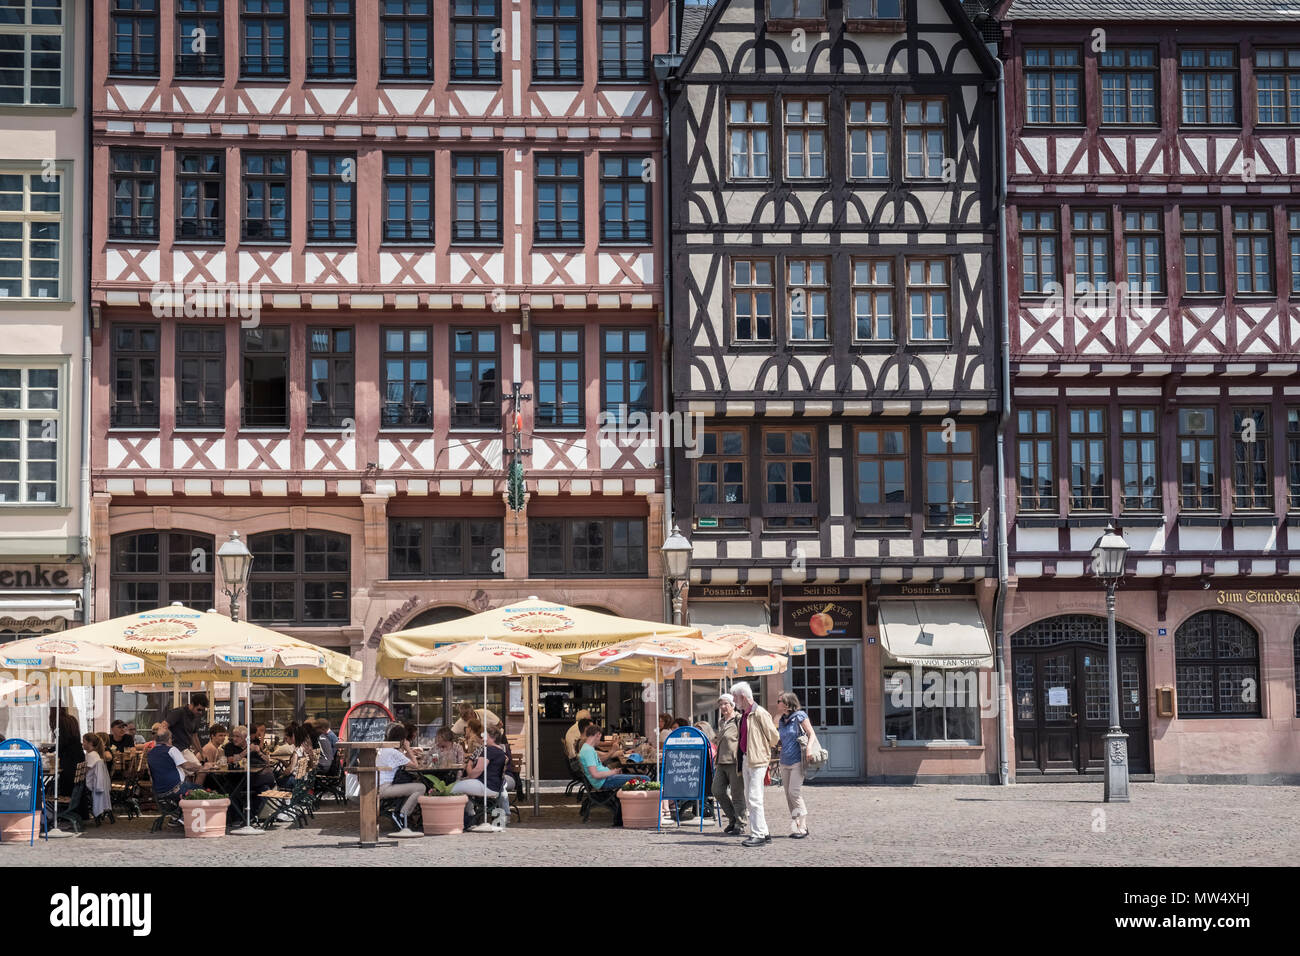 Traditional half timbered buildings, part of restoration work in the historic old town (Alstadt), Romerberg, Frankfurt am Main, Hesse, Germany. - Stock Image